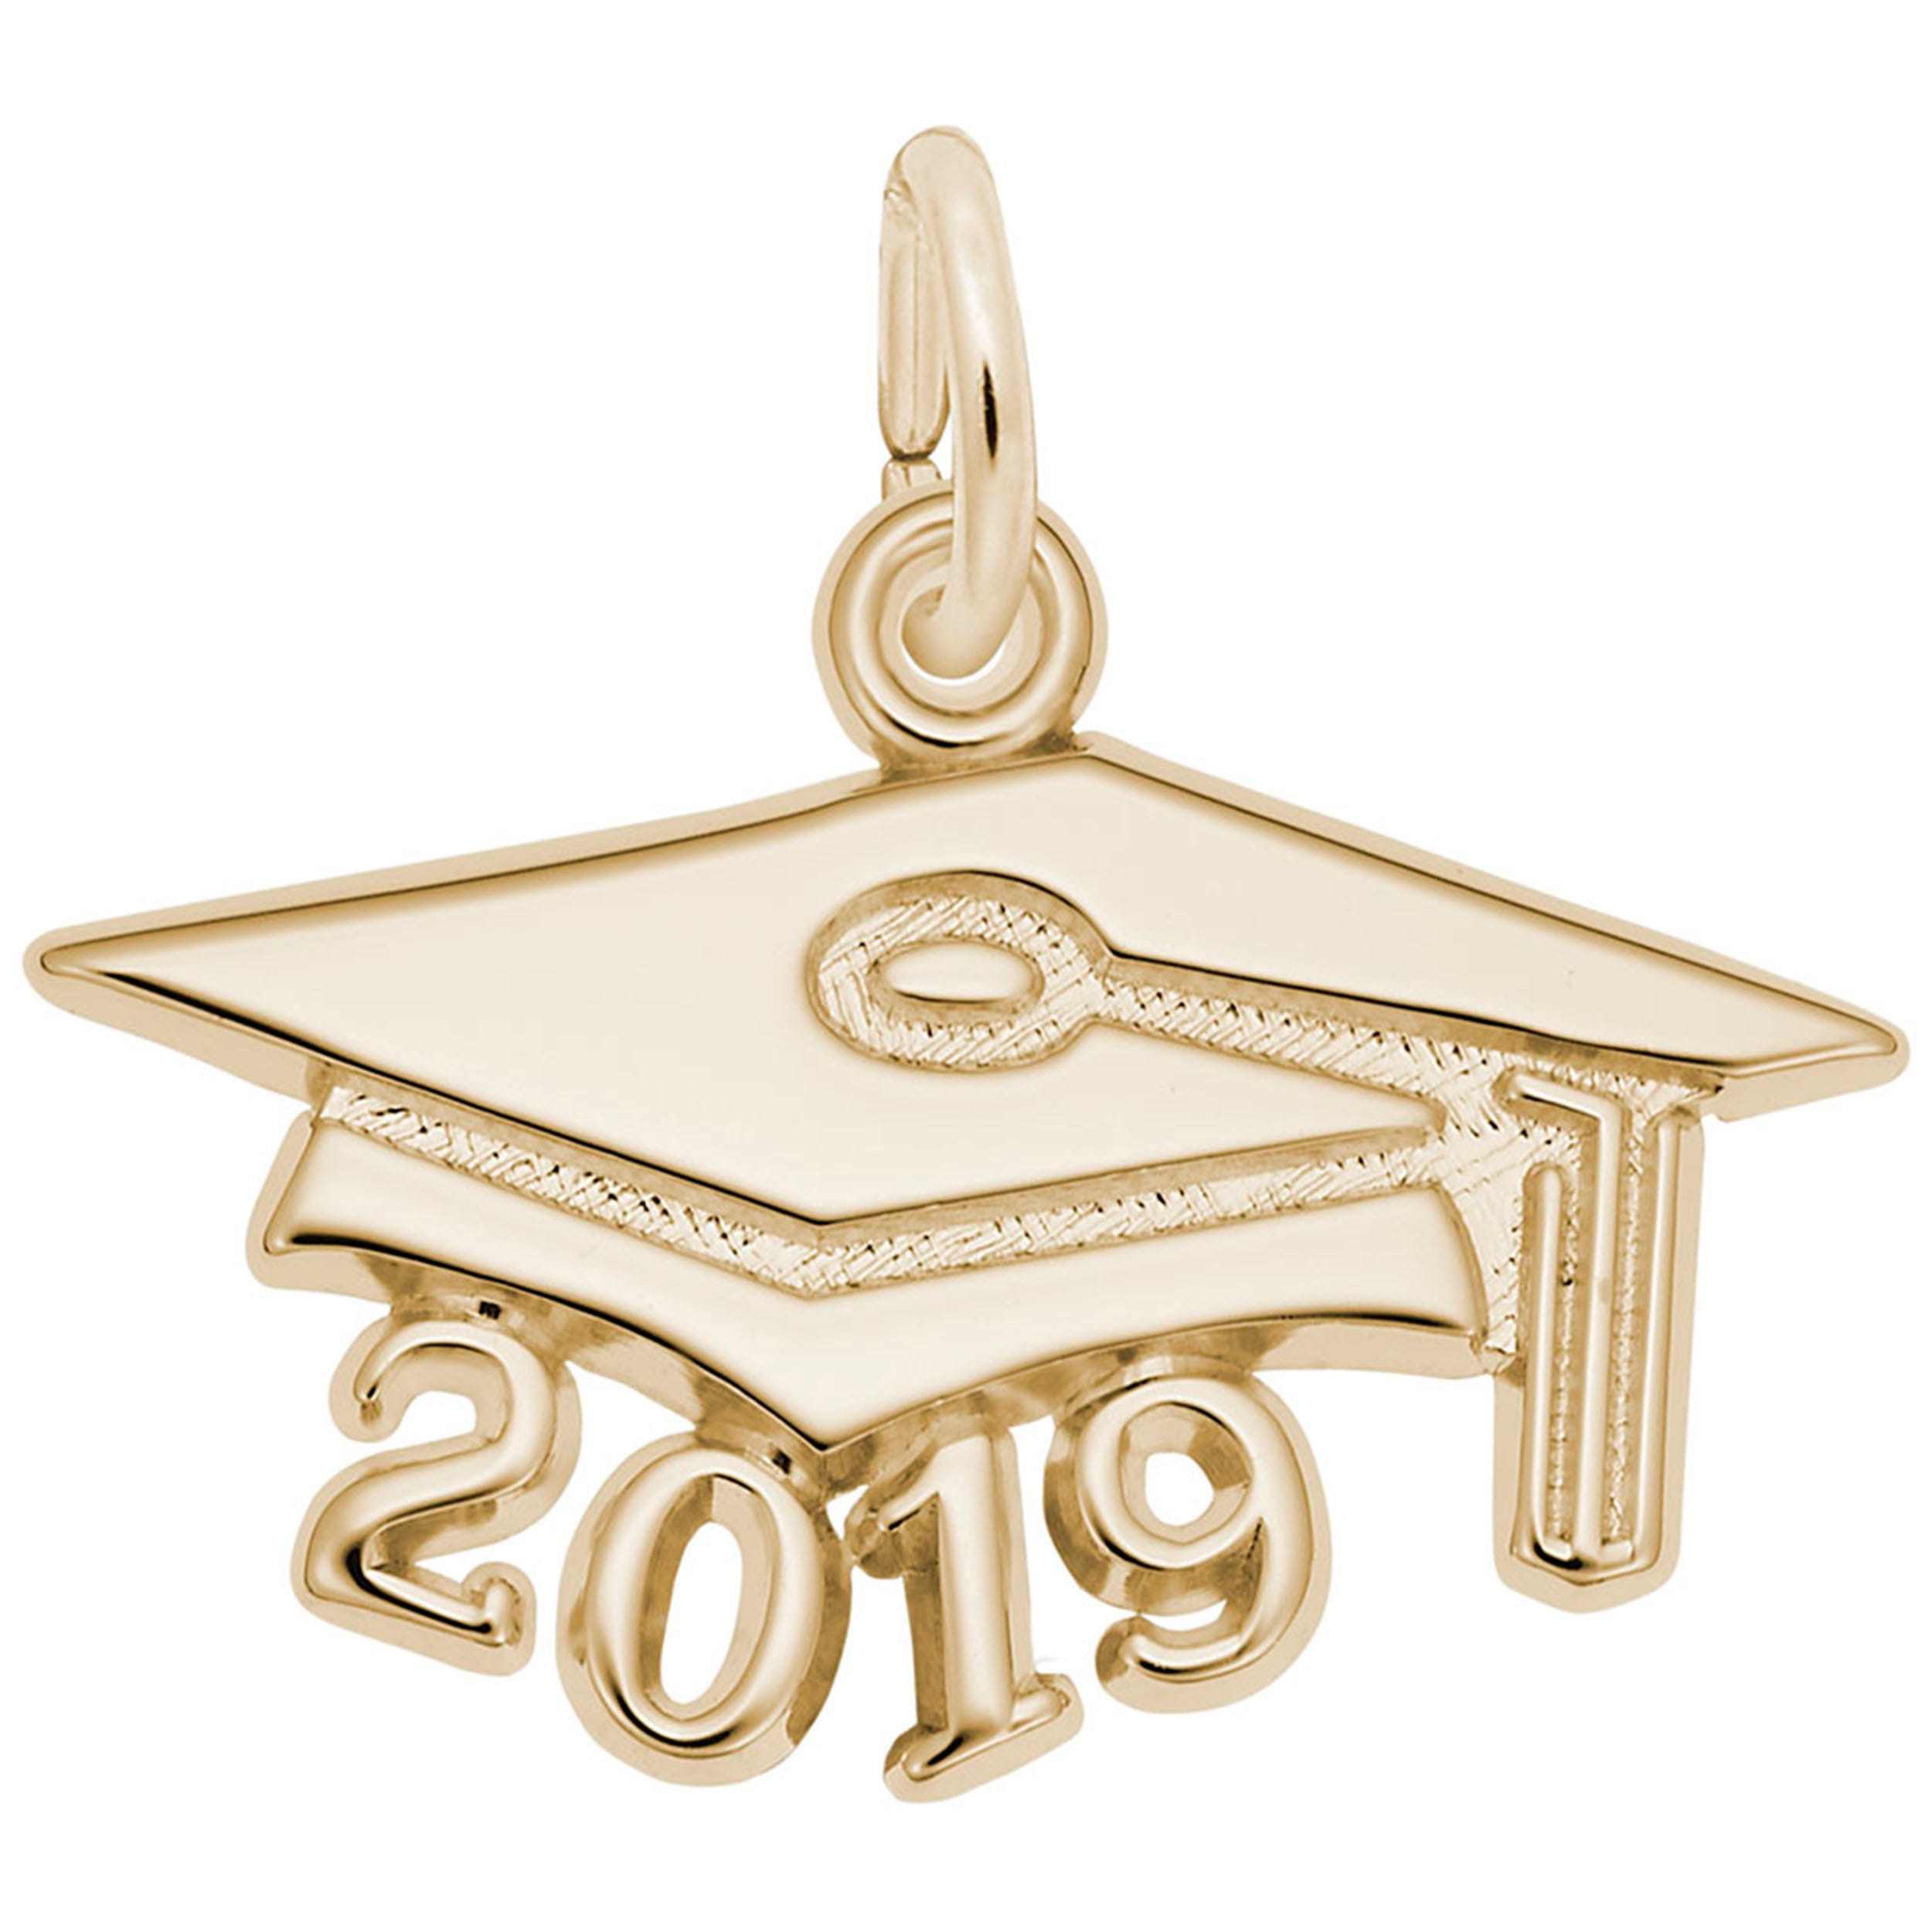 2019 Large Graduation Cap Charm in 14k Yellow Gold